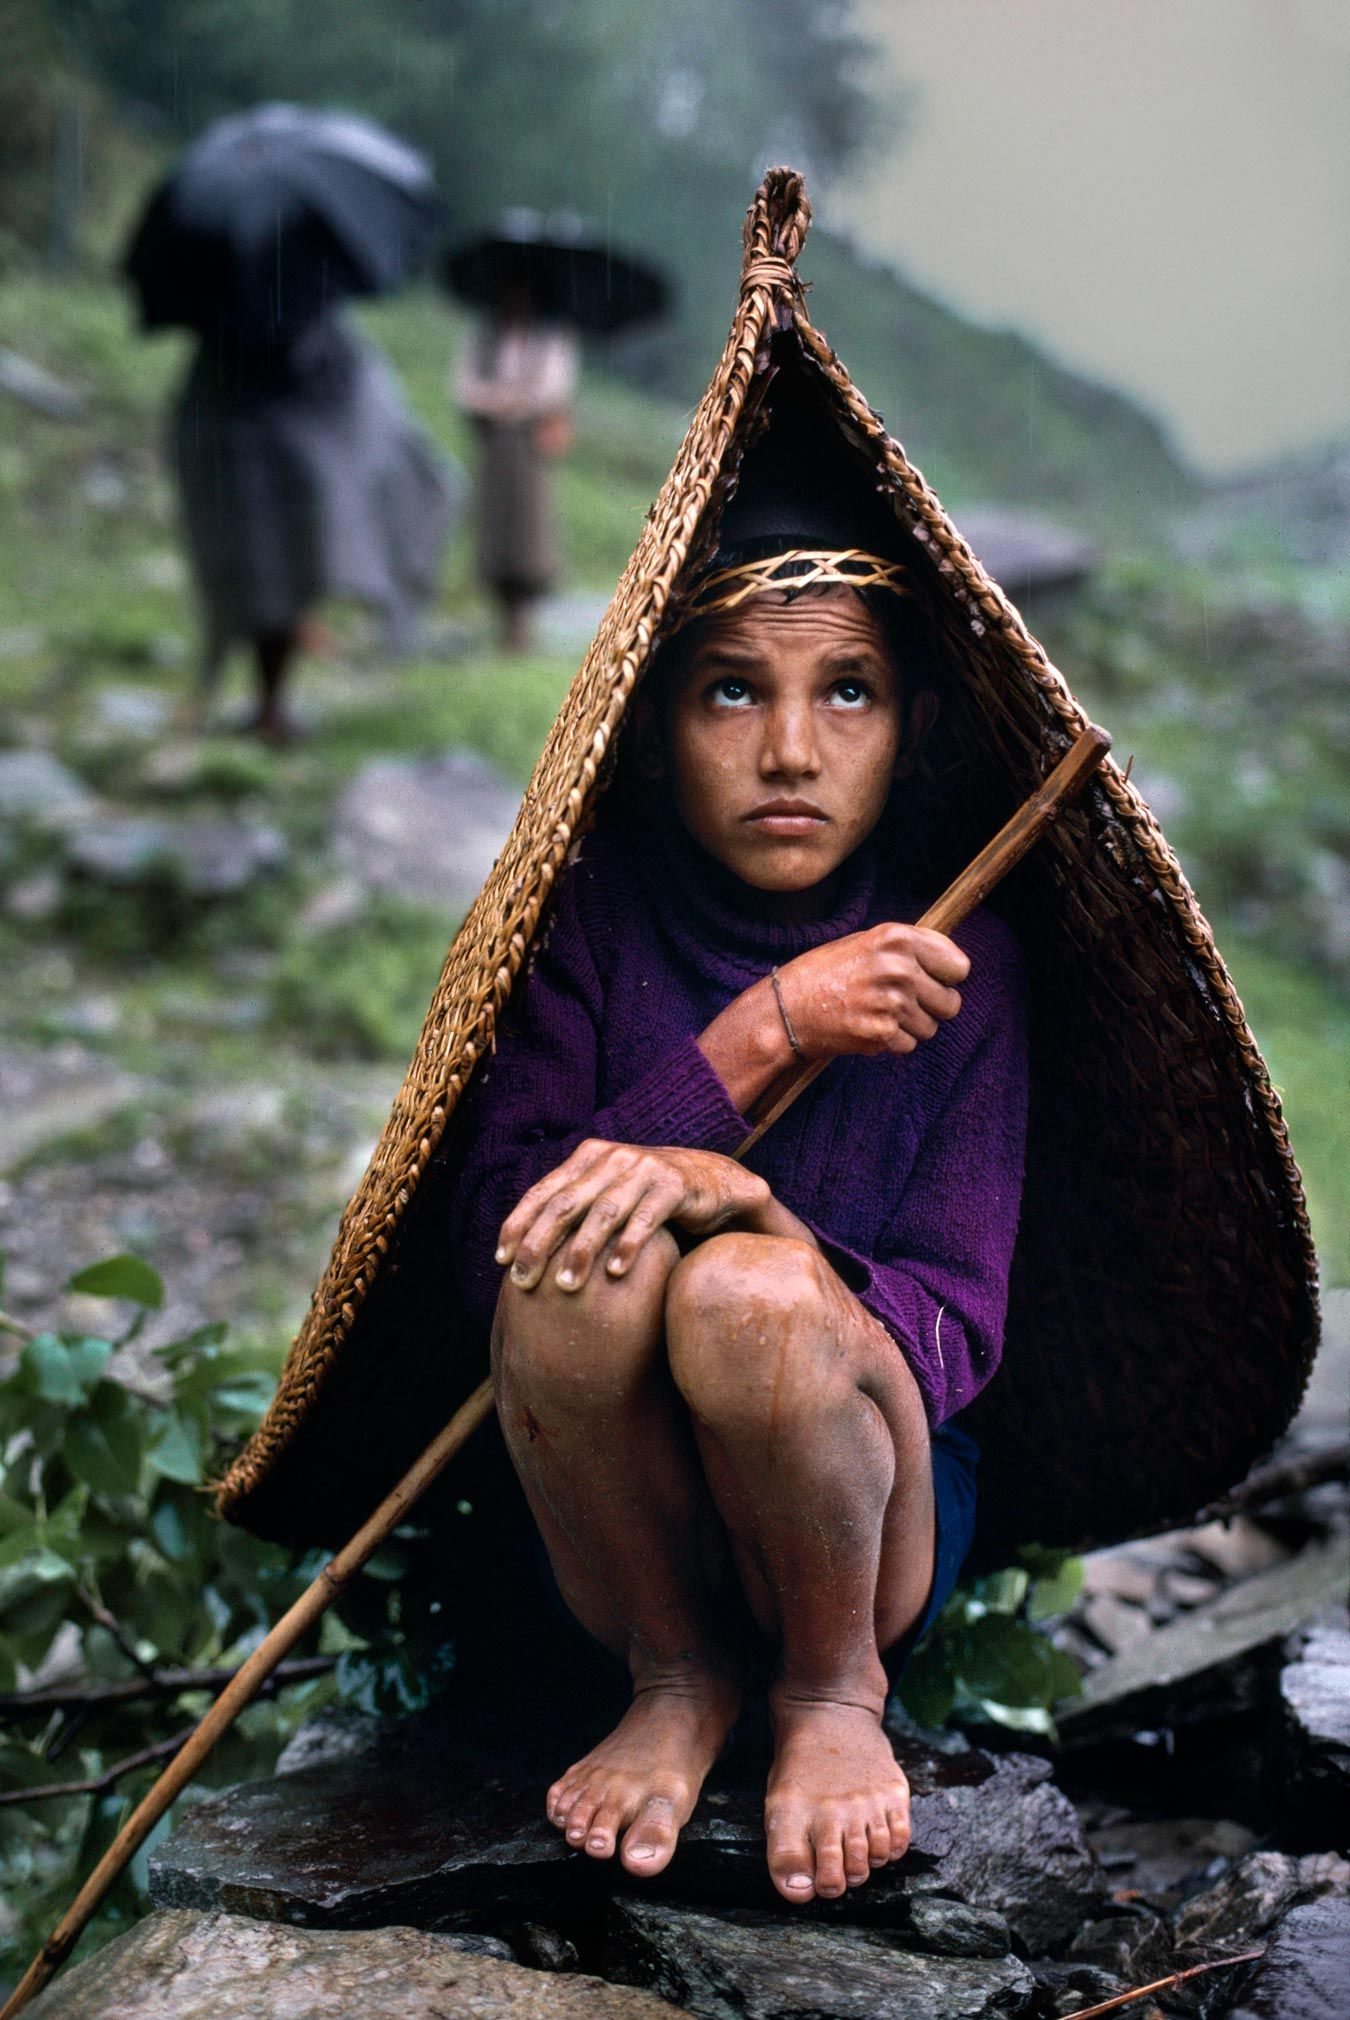 Fotoideen Menschen Pin By Candace Marshall Smith On Steve Mccurry Fotoideen Welt